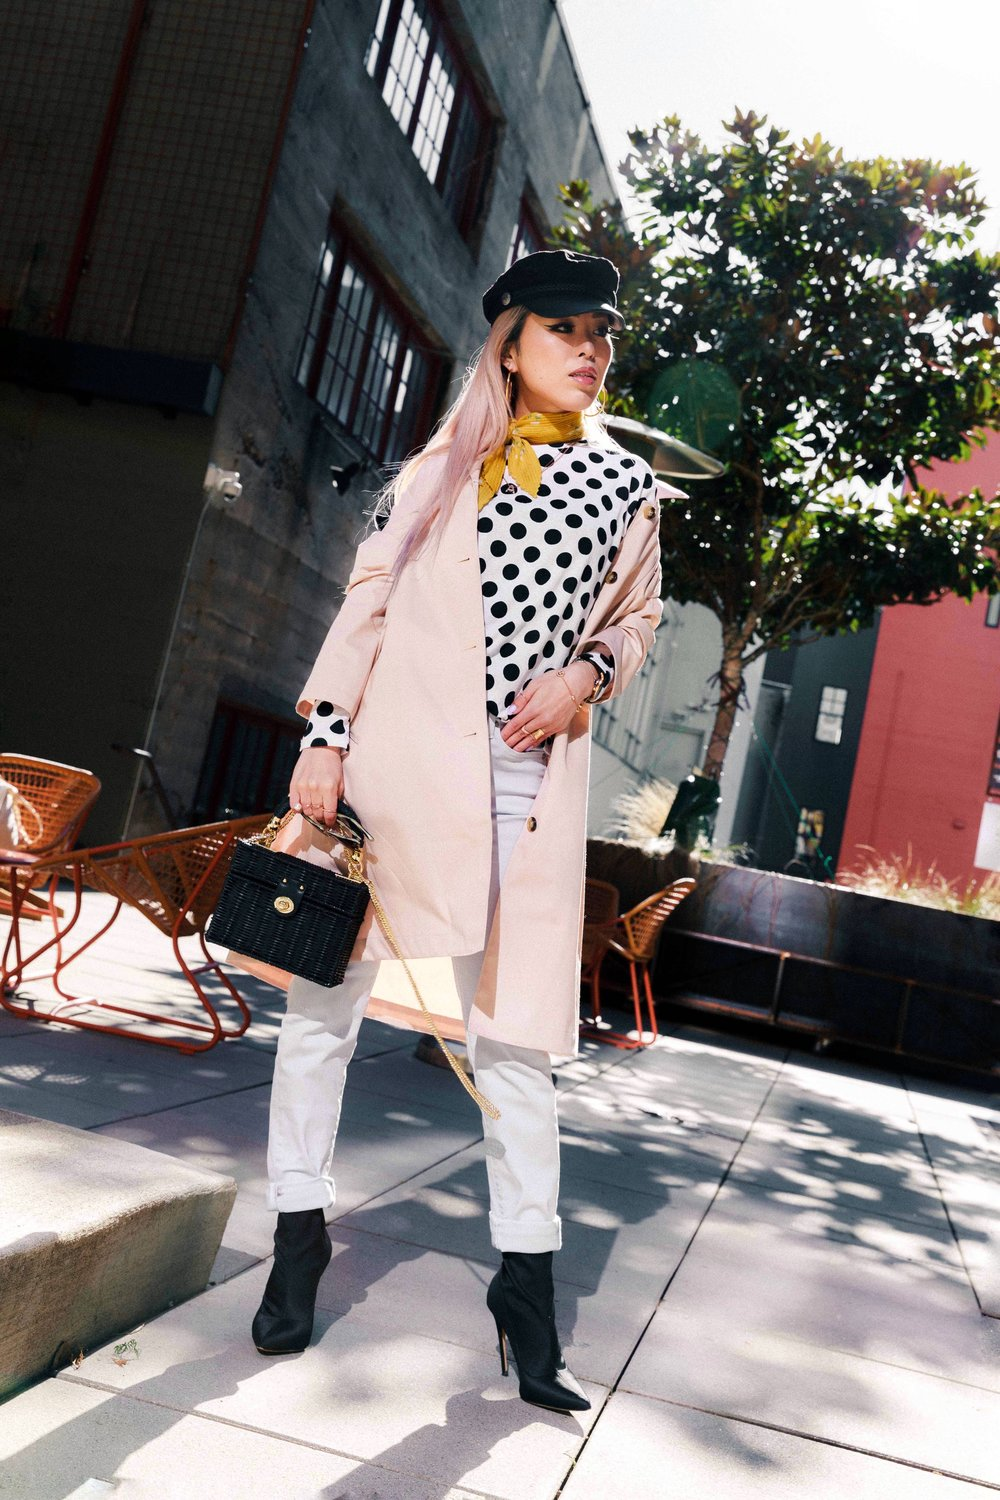 Uniqlo BLOCKTECH SOUTIEN COLLAR COAT-Yellow Floral Scarf-H&M Captain's Cap-Zara Polka dot Top-Zara MINAUDIÈRE BAG WITH BRAIDED HANDLE-Swarovski CRYSTAL WISHES HEART PENDANT SET, RED, MIXED PLATING-Ollie Quinn Sunglasses-ADEXE Watch-Uniqlo WOMEN HIGH RISE CIGARETTE JEANS-AikA's Love Closet-Seattle Style Blogger-Japanese-pink hair-petite fashion 10